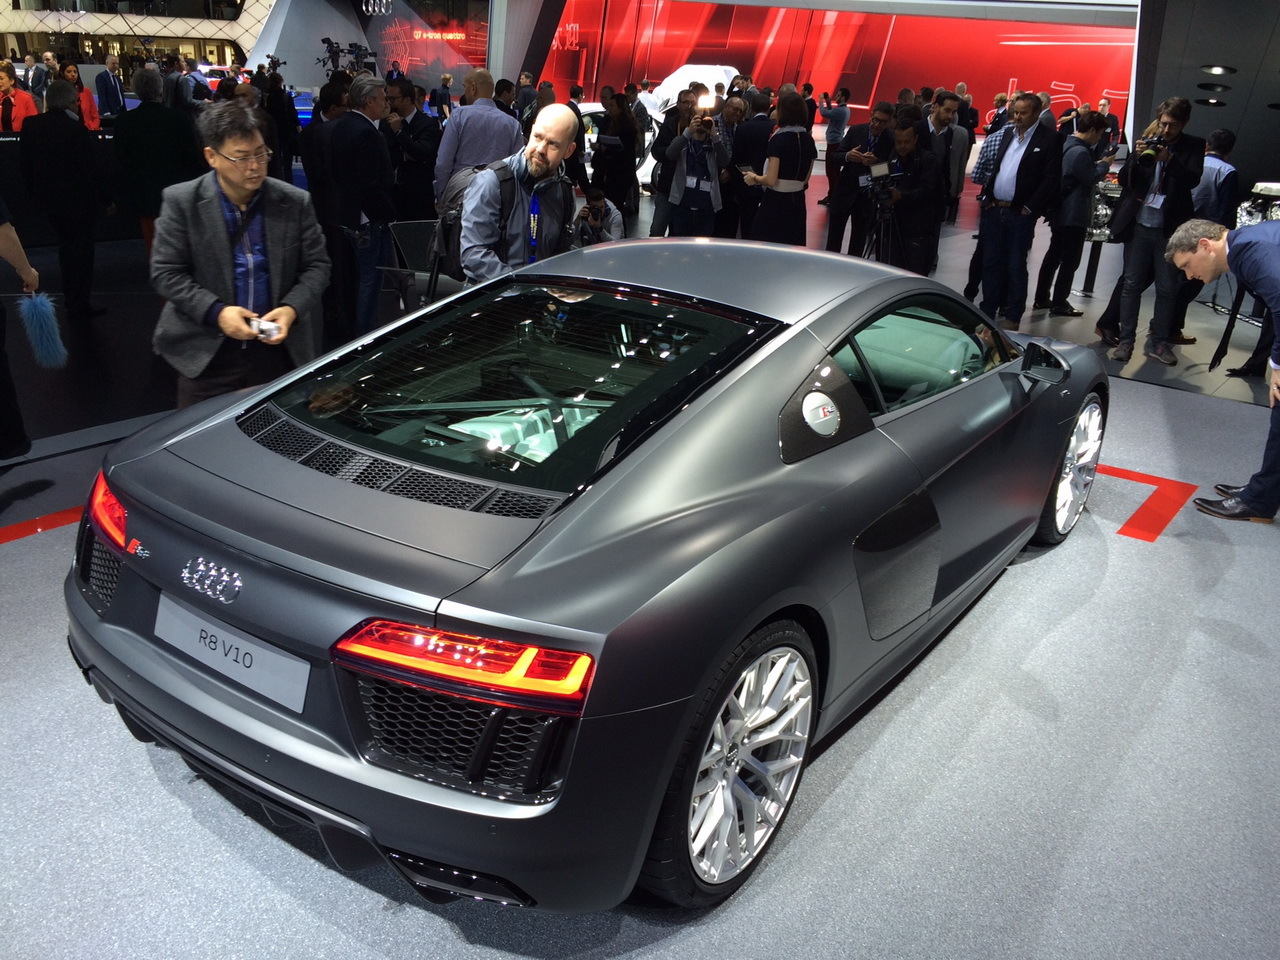 deux minutes bord de la nouvelle audi r8 2015 photo 2 l 39 argus. Black Bedroom Furniture Sets. Home Design Ideas